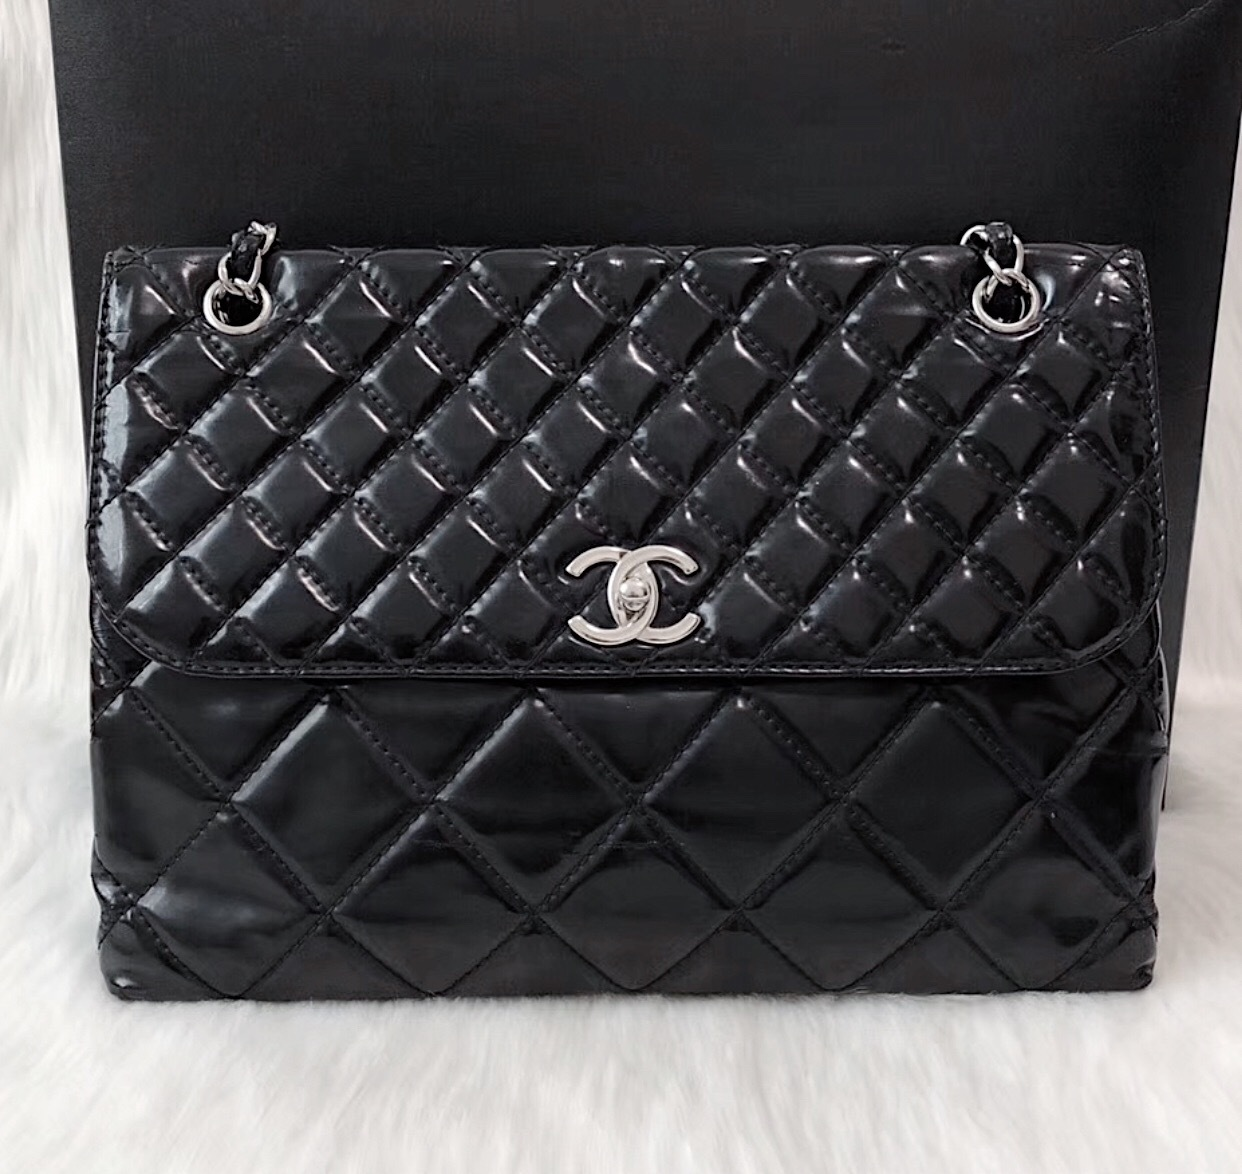 Authentic Chanel Black Patent Quilted Vinyl In The Business Maxi Flap Bag SHW